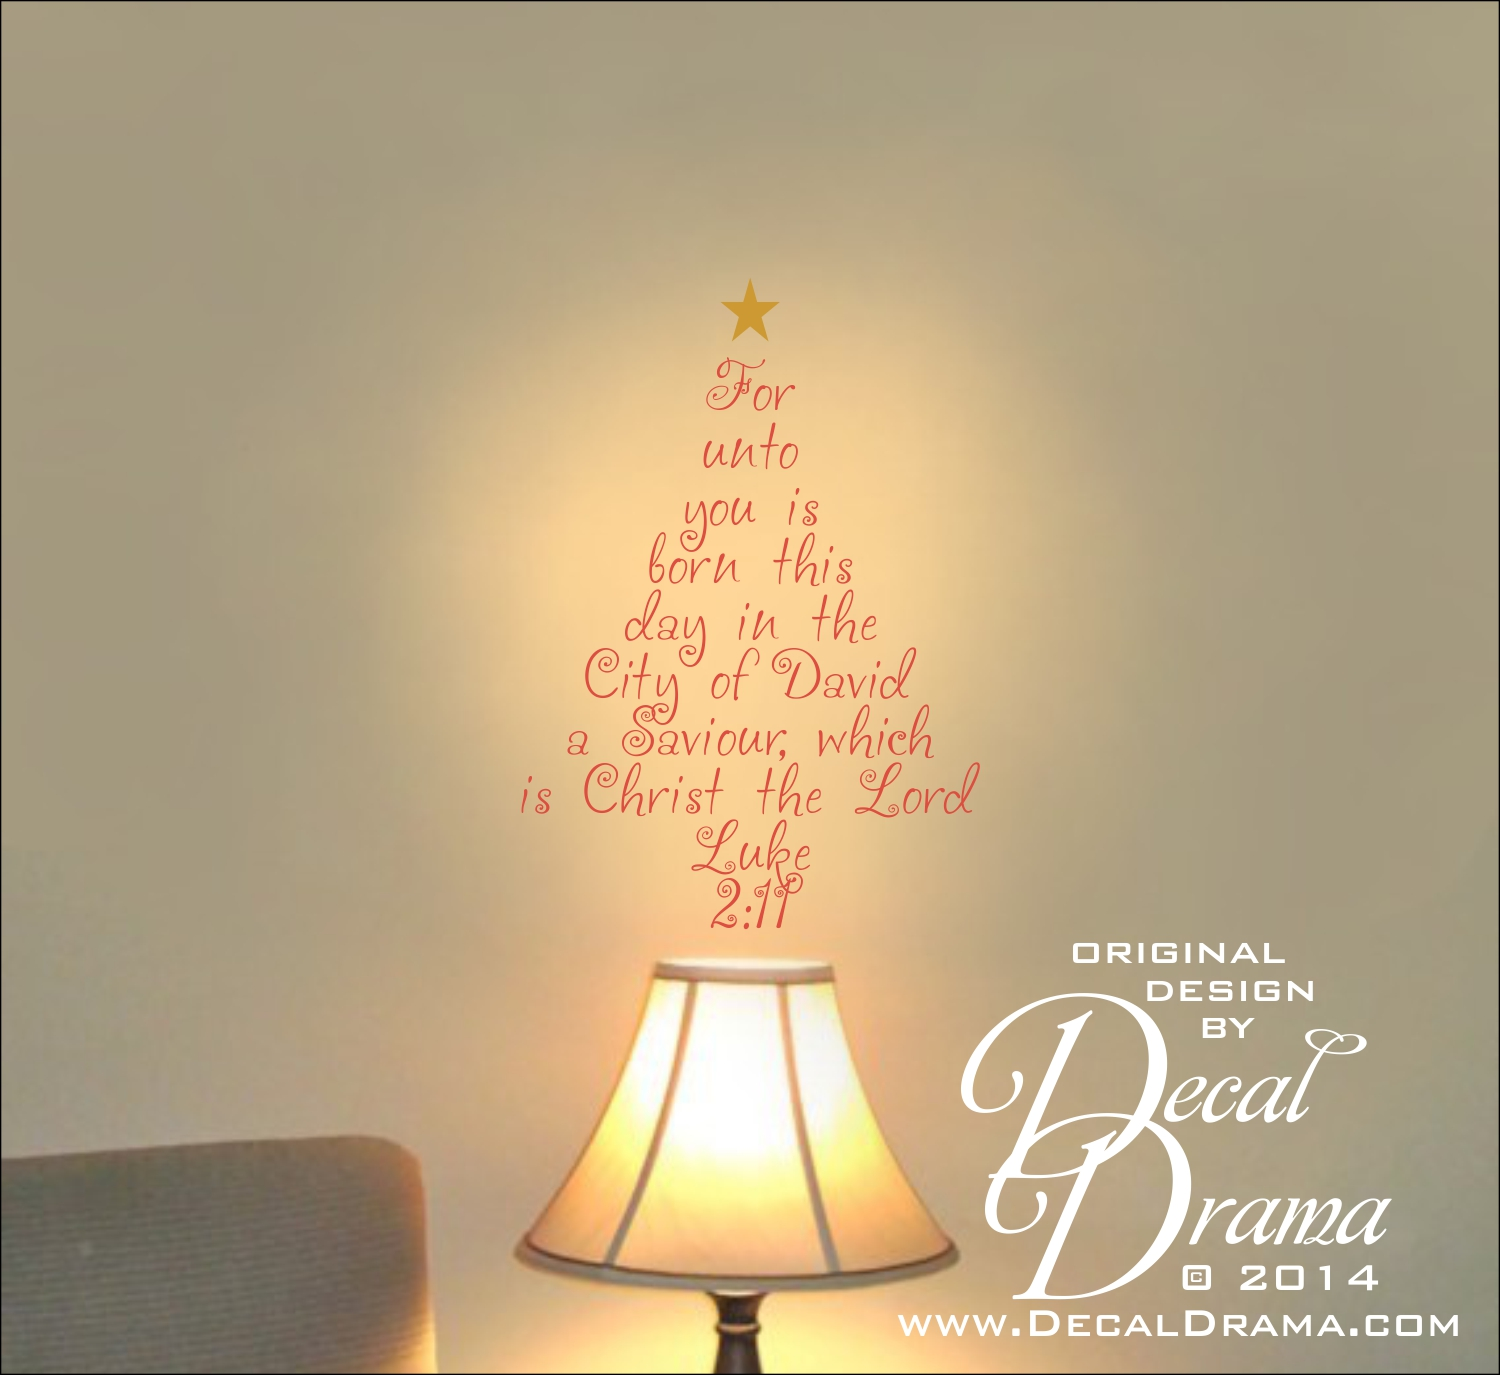 decal drama christmas for unto you is born this day in the city christmas for unto you is born this day in the city of david a saviour